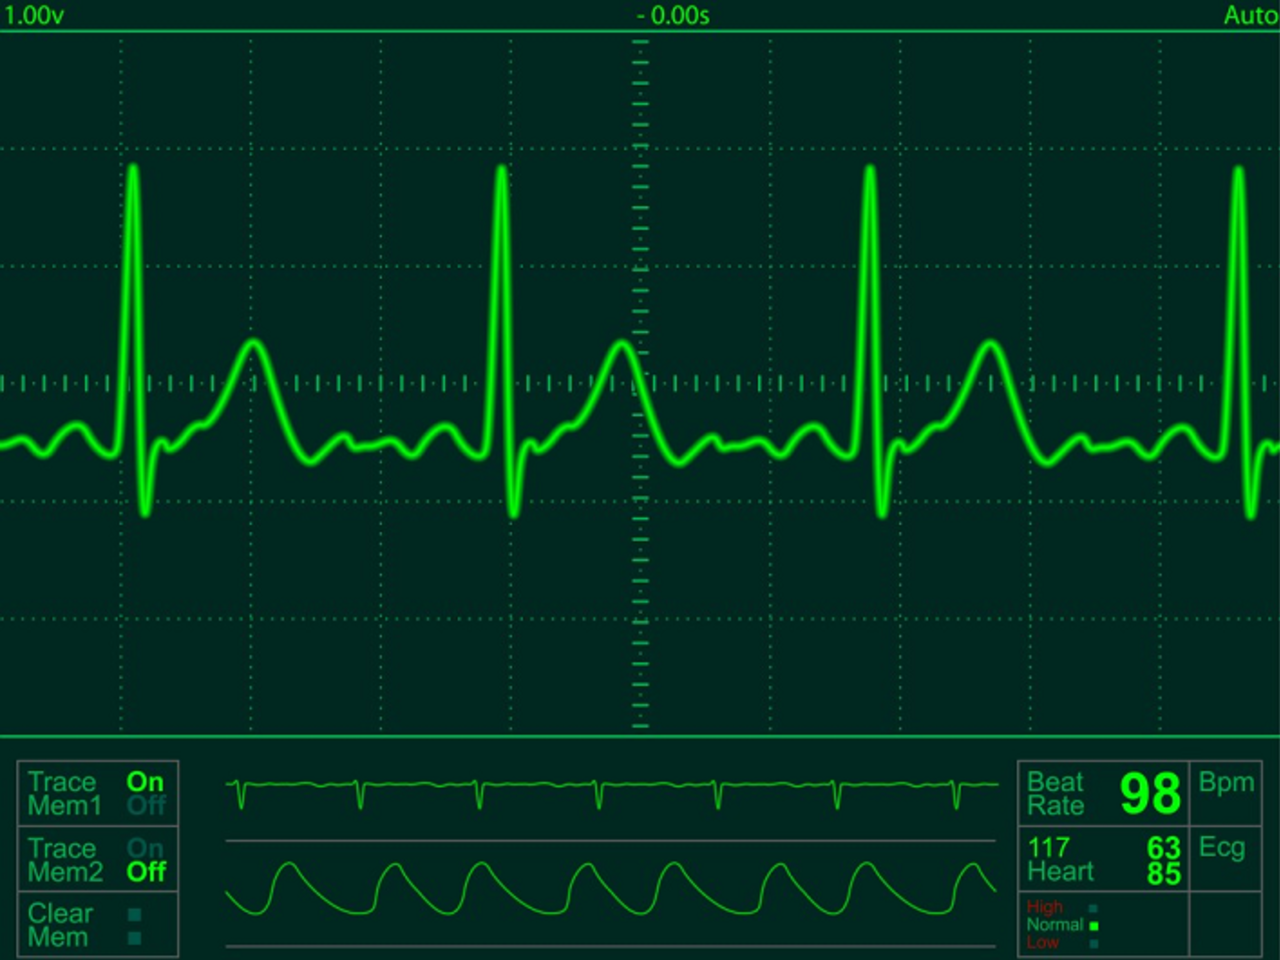 Interfacing Electrocardiogram (ECG) with IoT